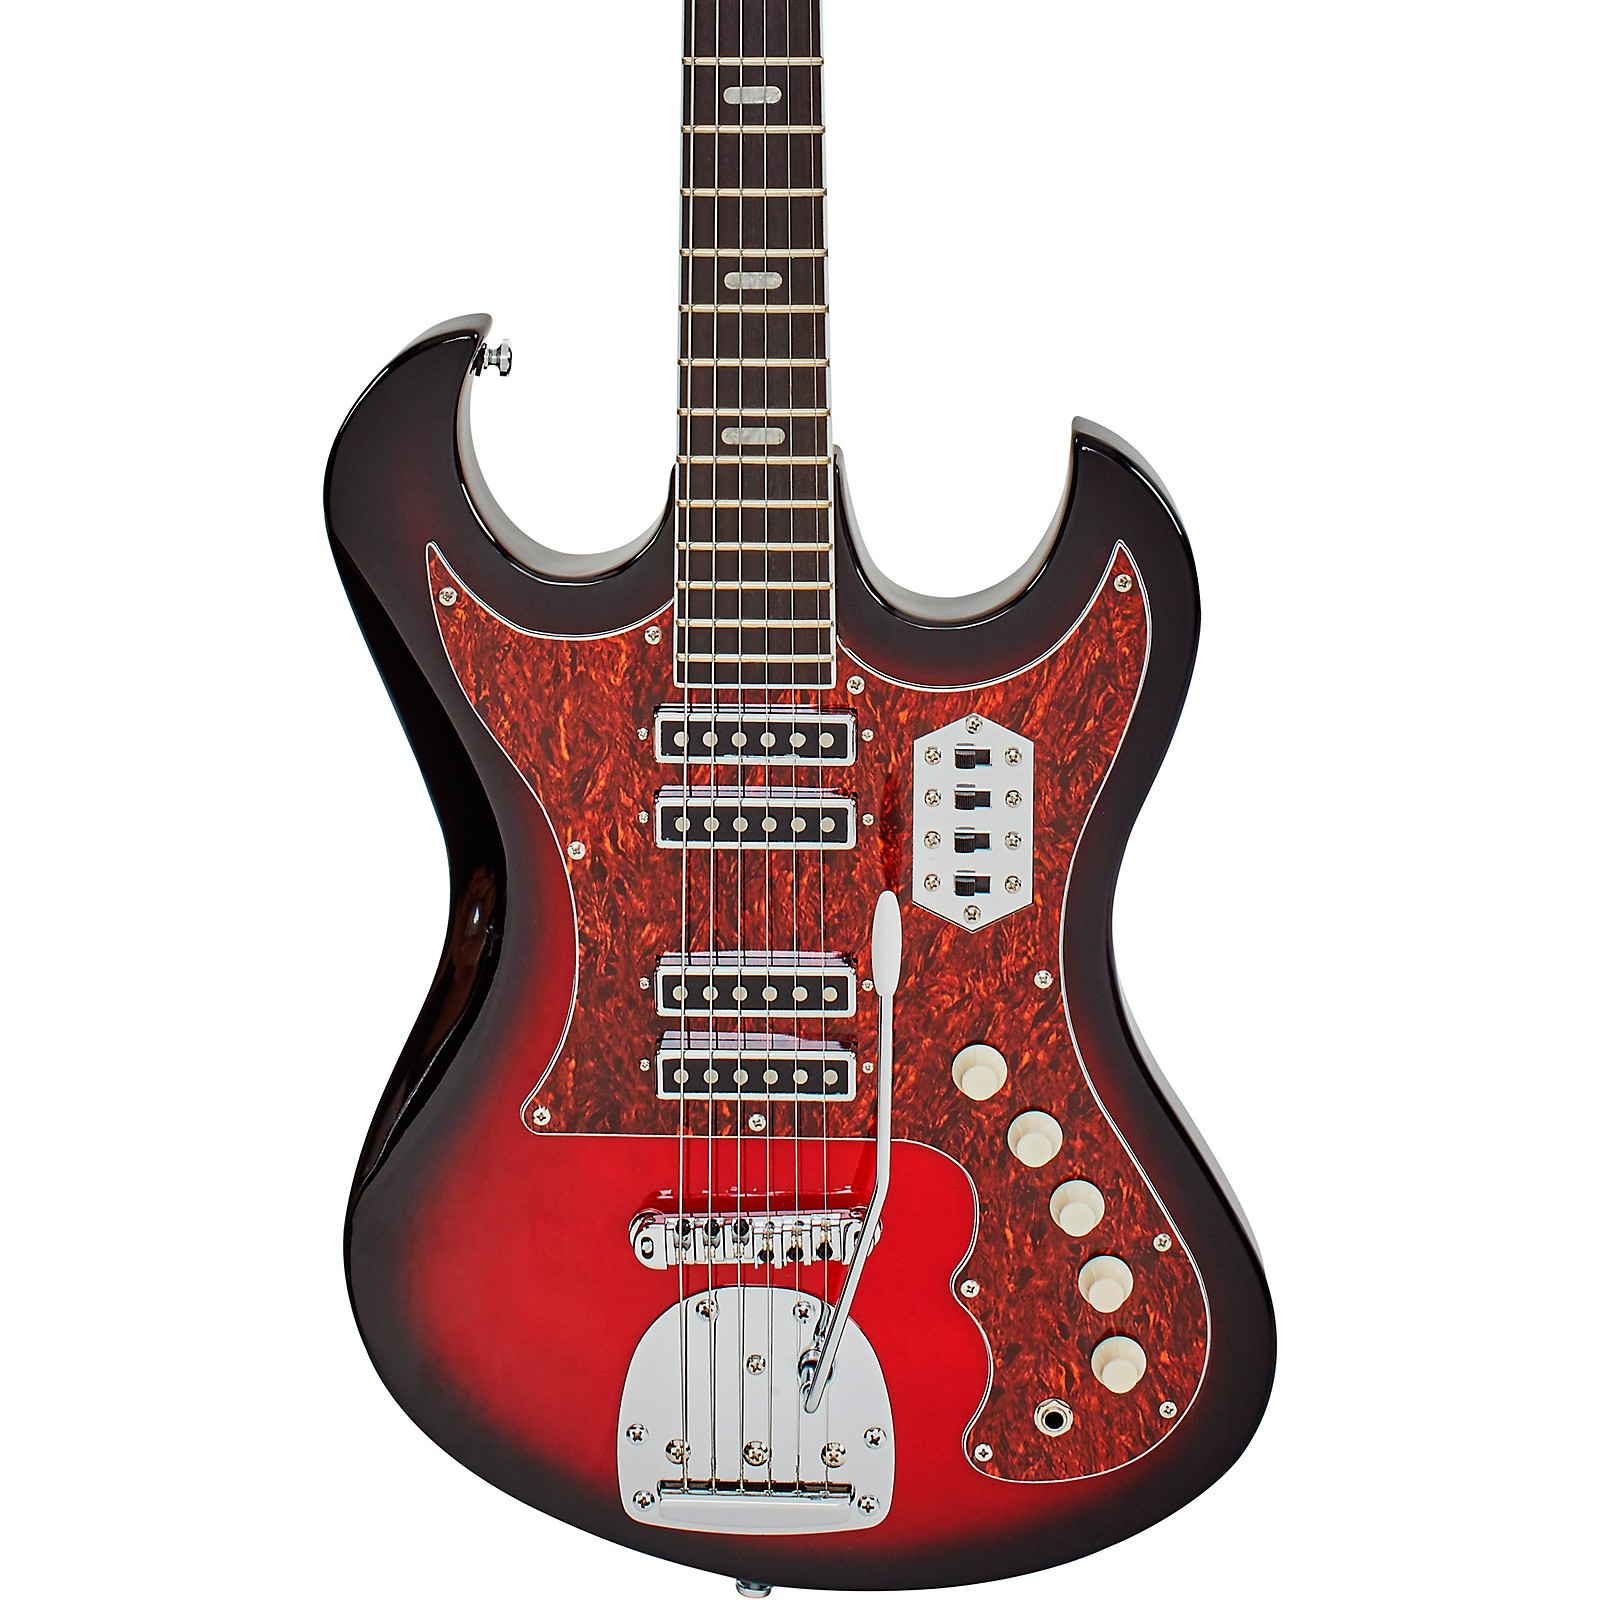 Eastwood SD-40 Hound Dog Electric Guitar